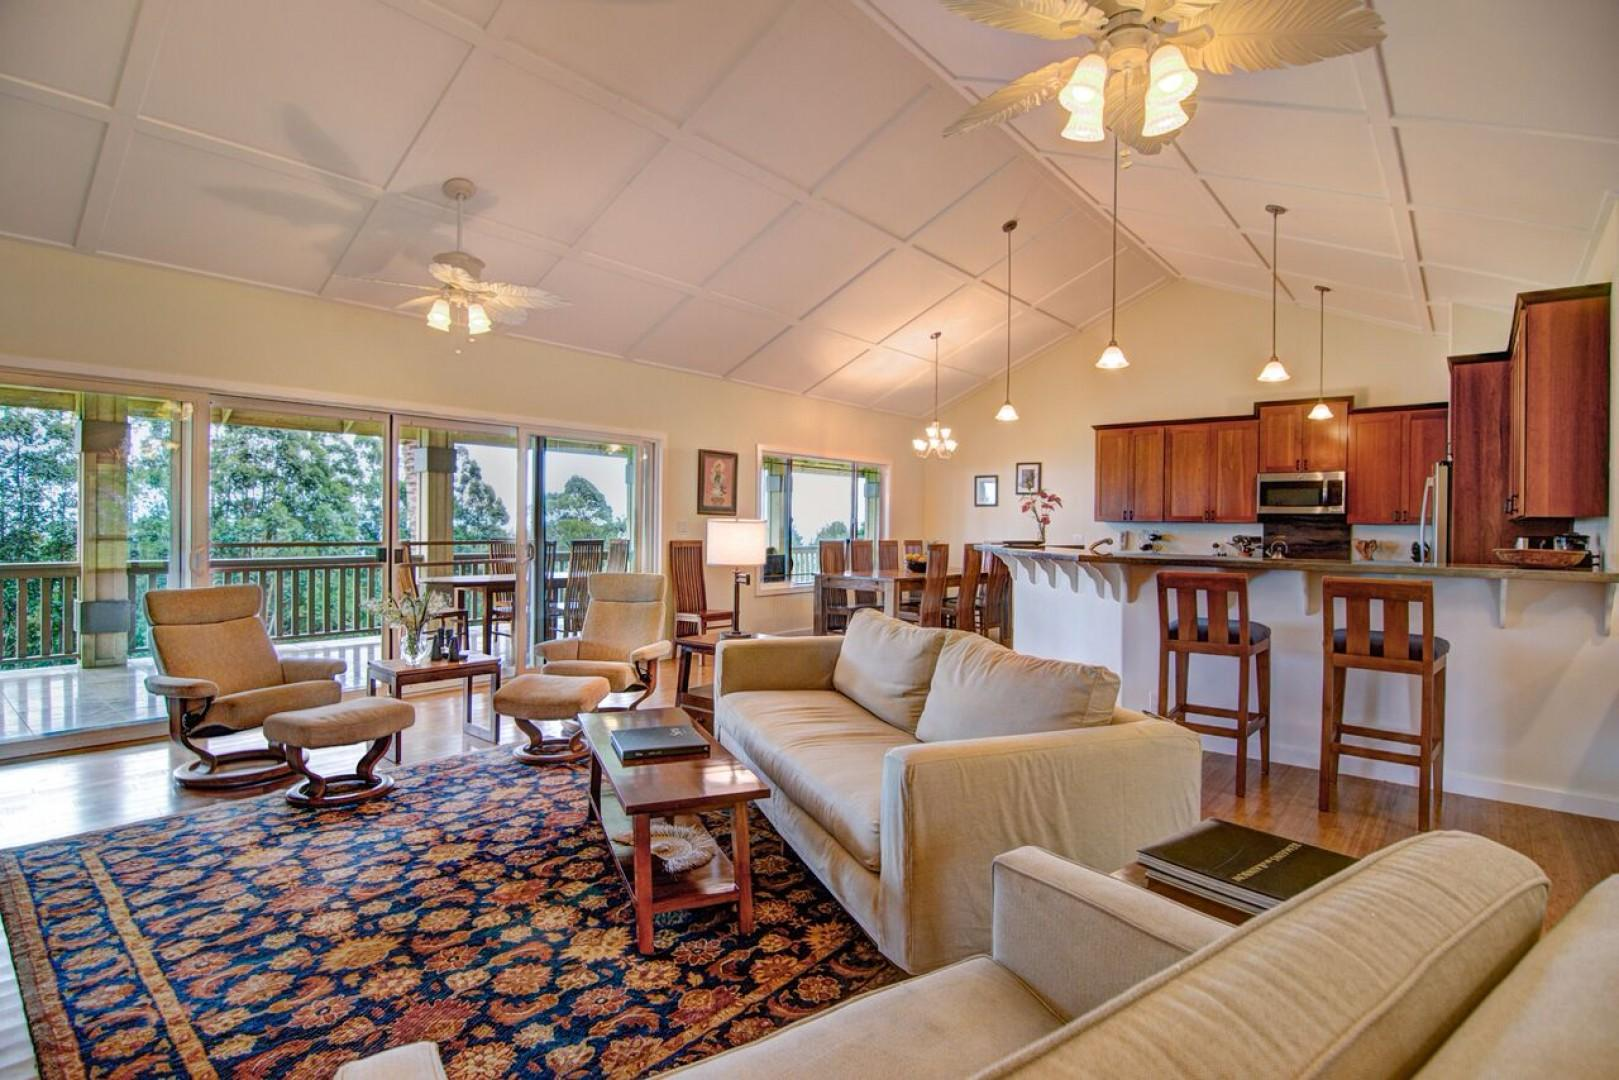 The entire living area opens to the 60 foot long back lanai with ocean and garden views